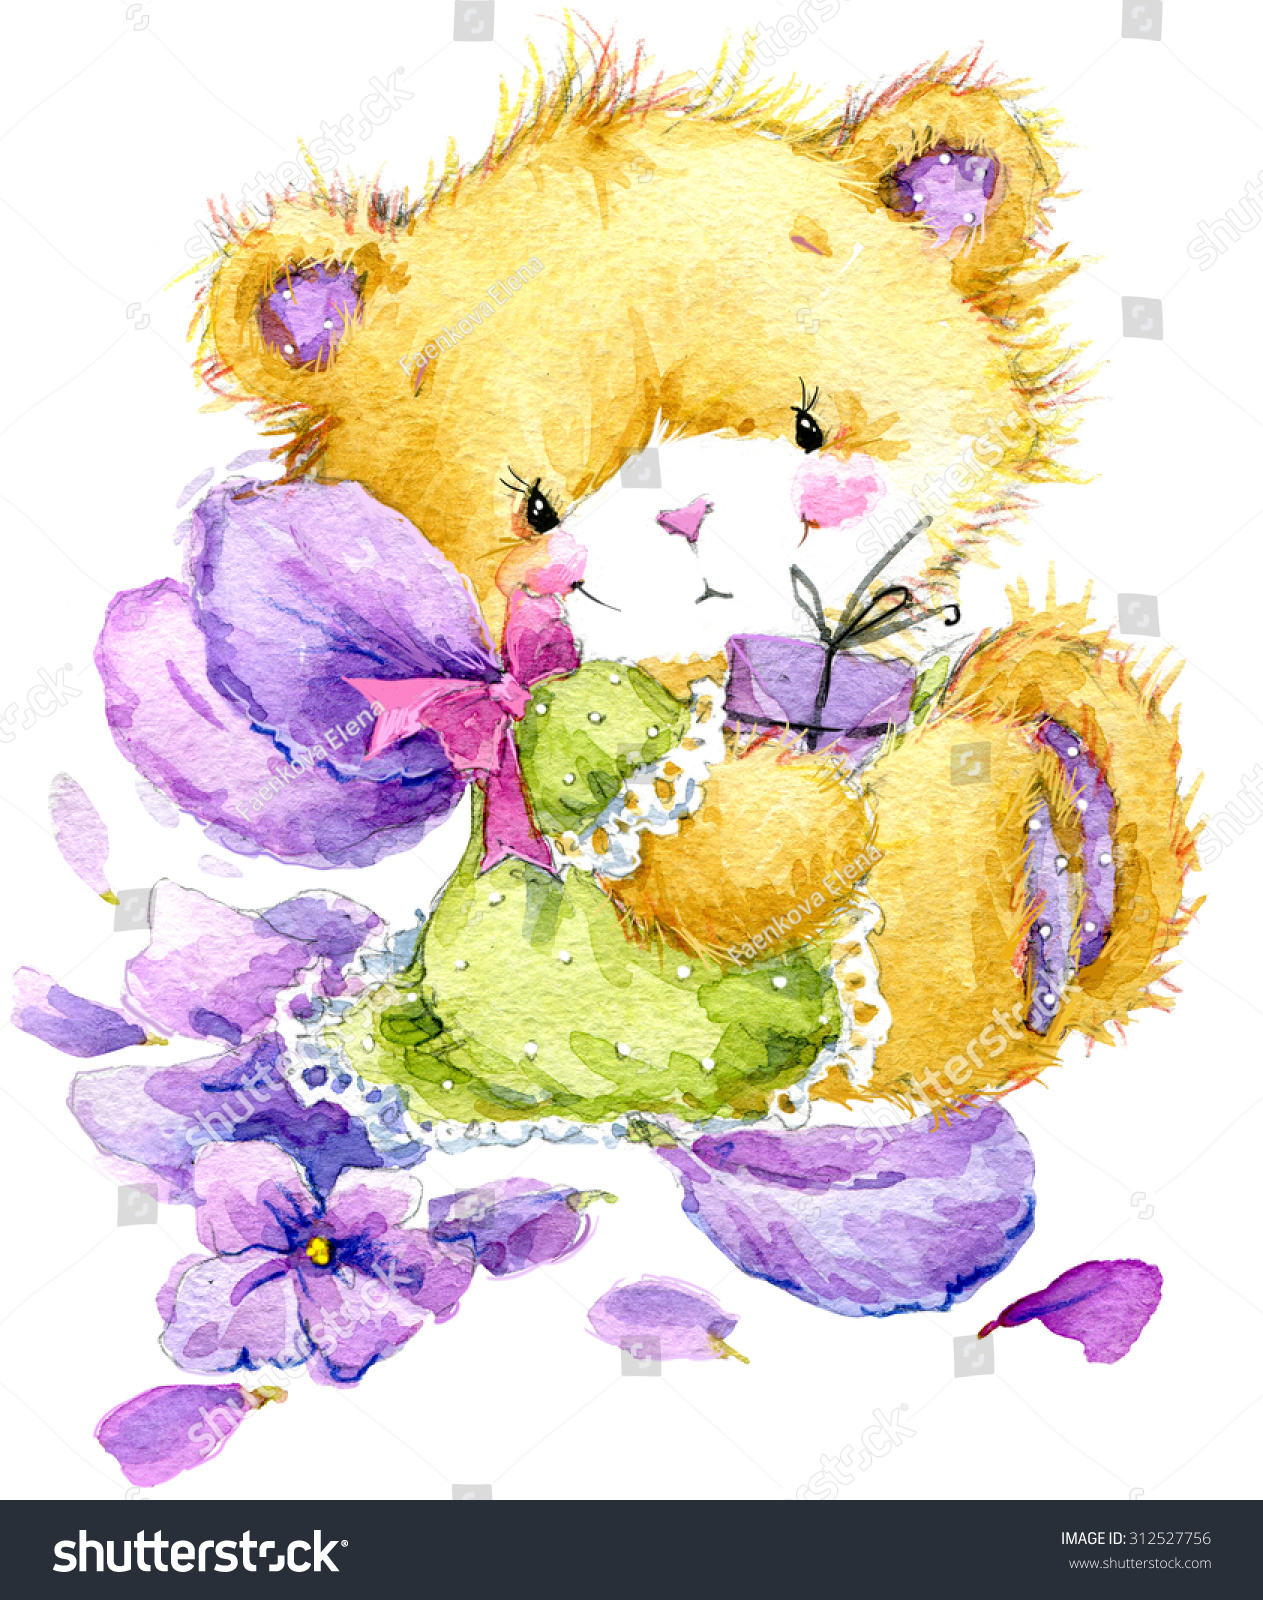 Toy Teddy Bear Flower Violet Toy Stock Illustration 312527756